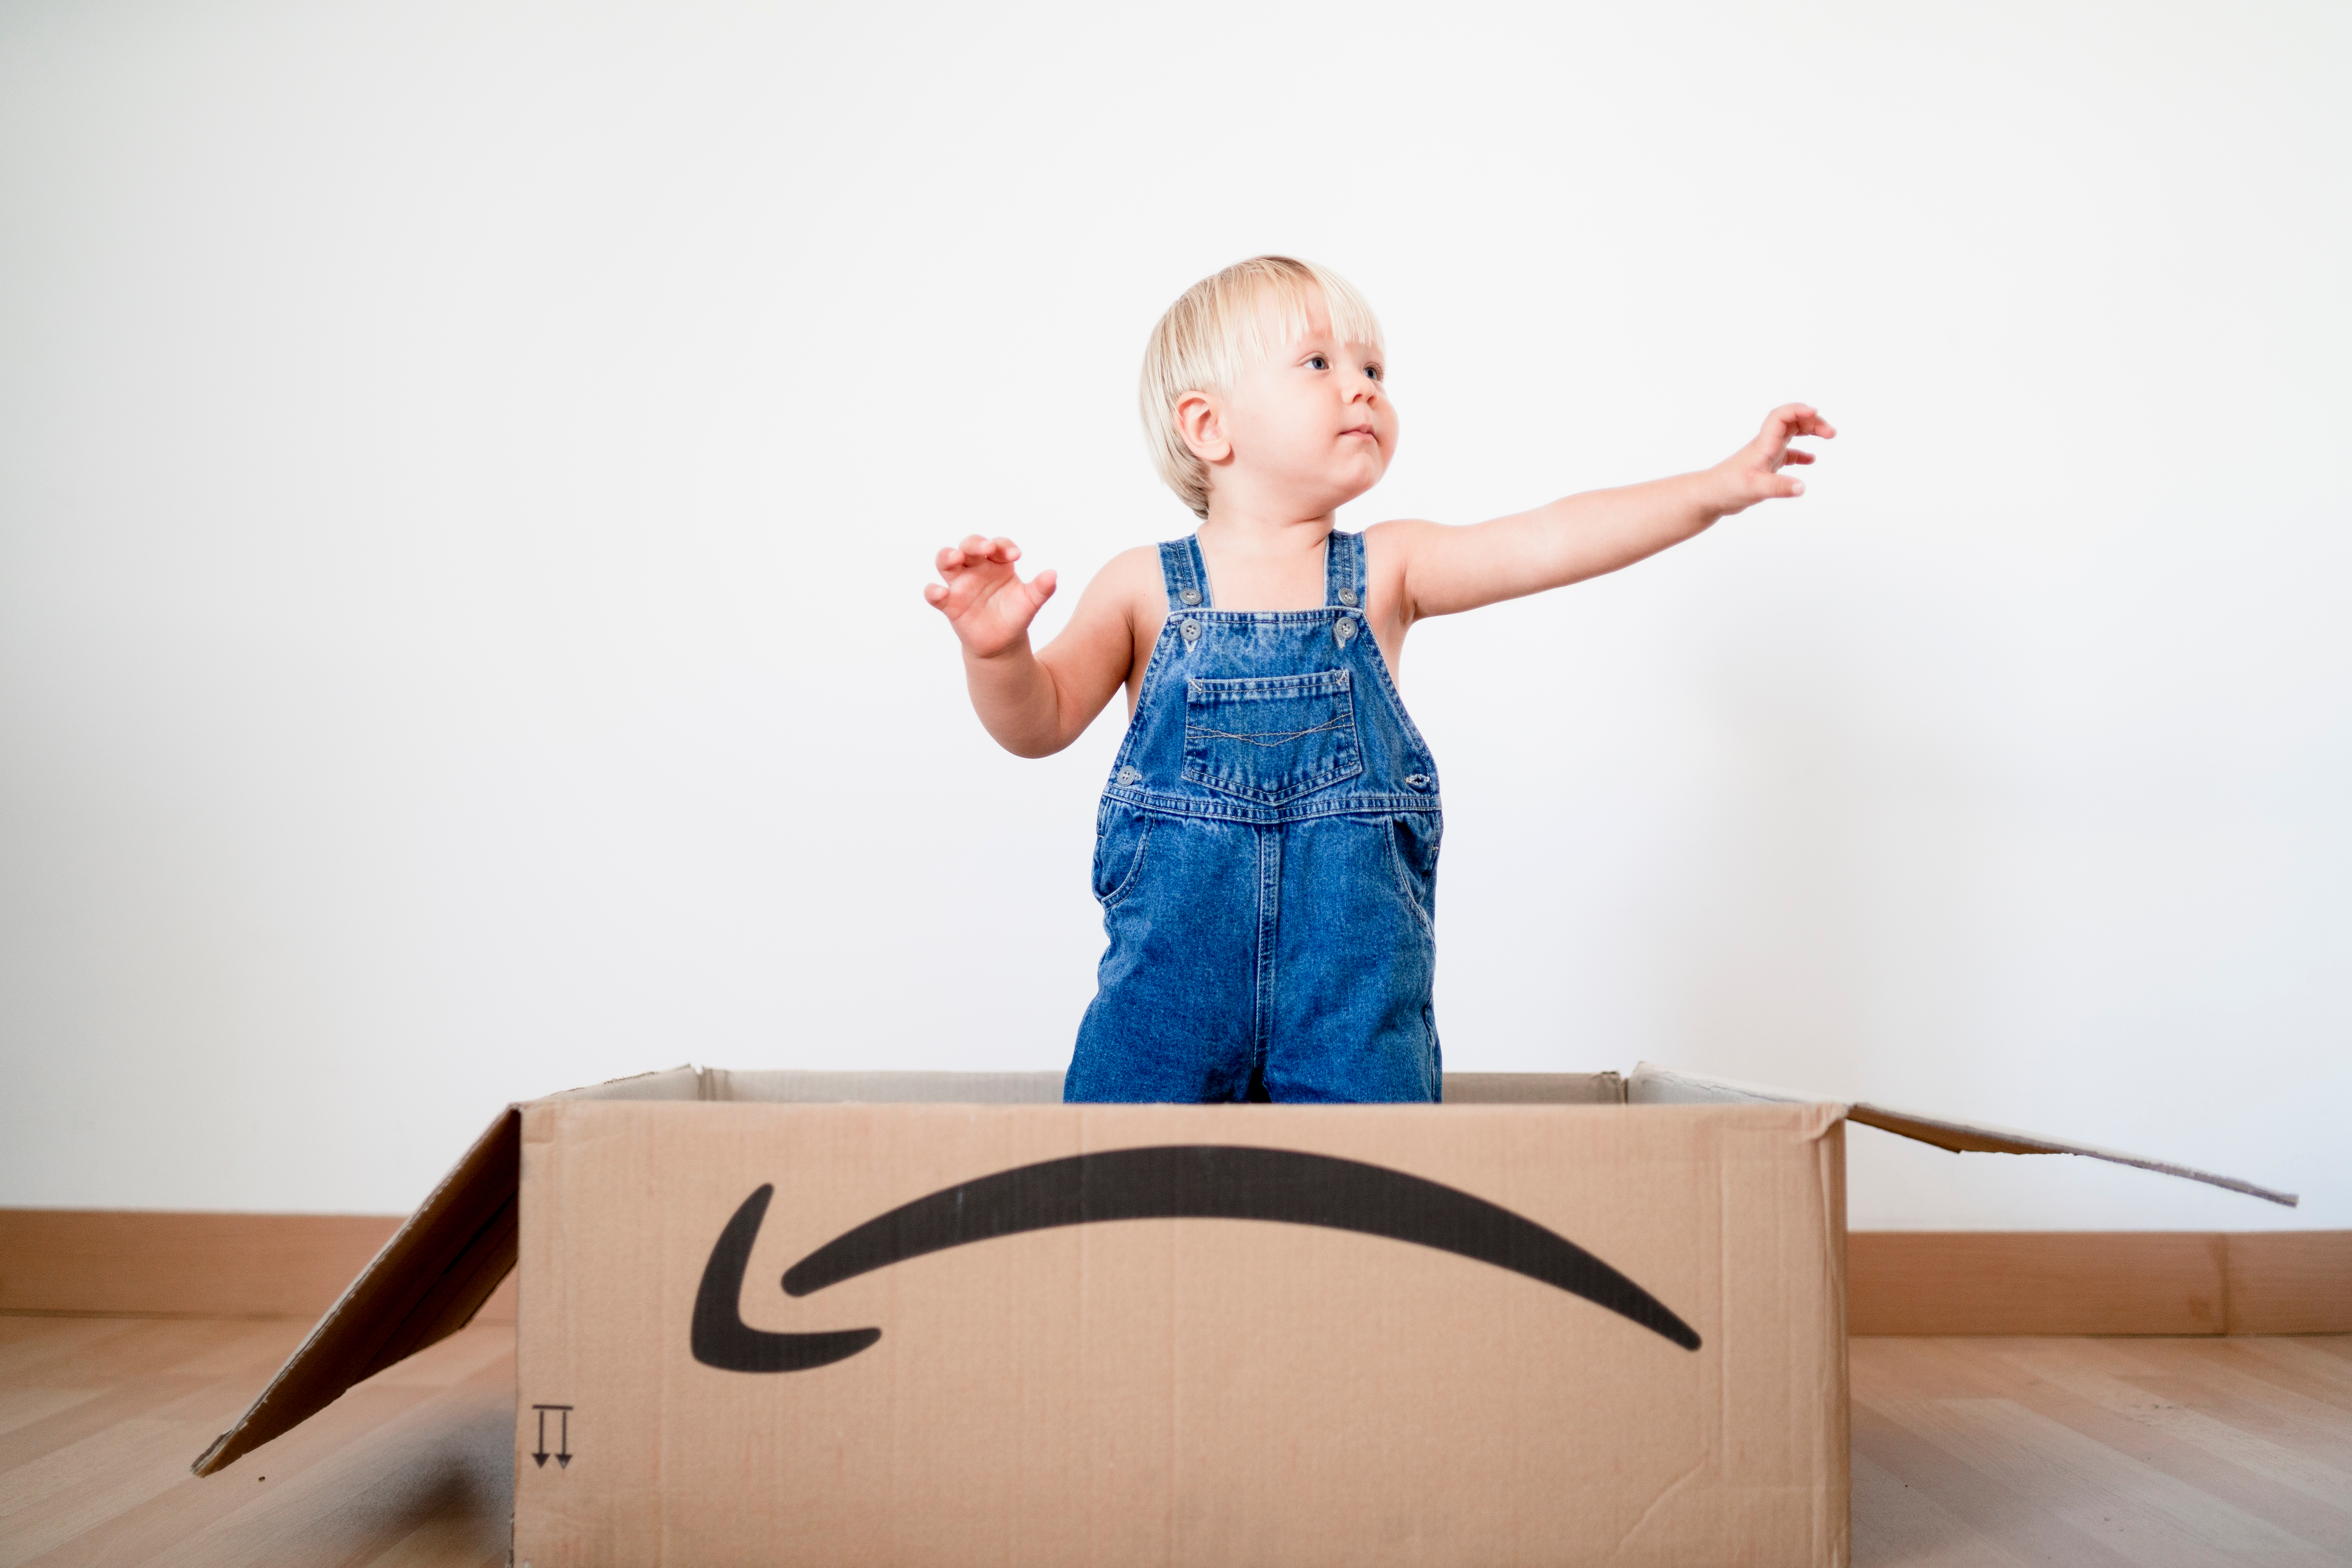 omnichannel market research amazon box child